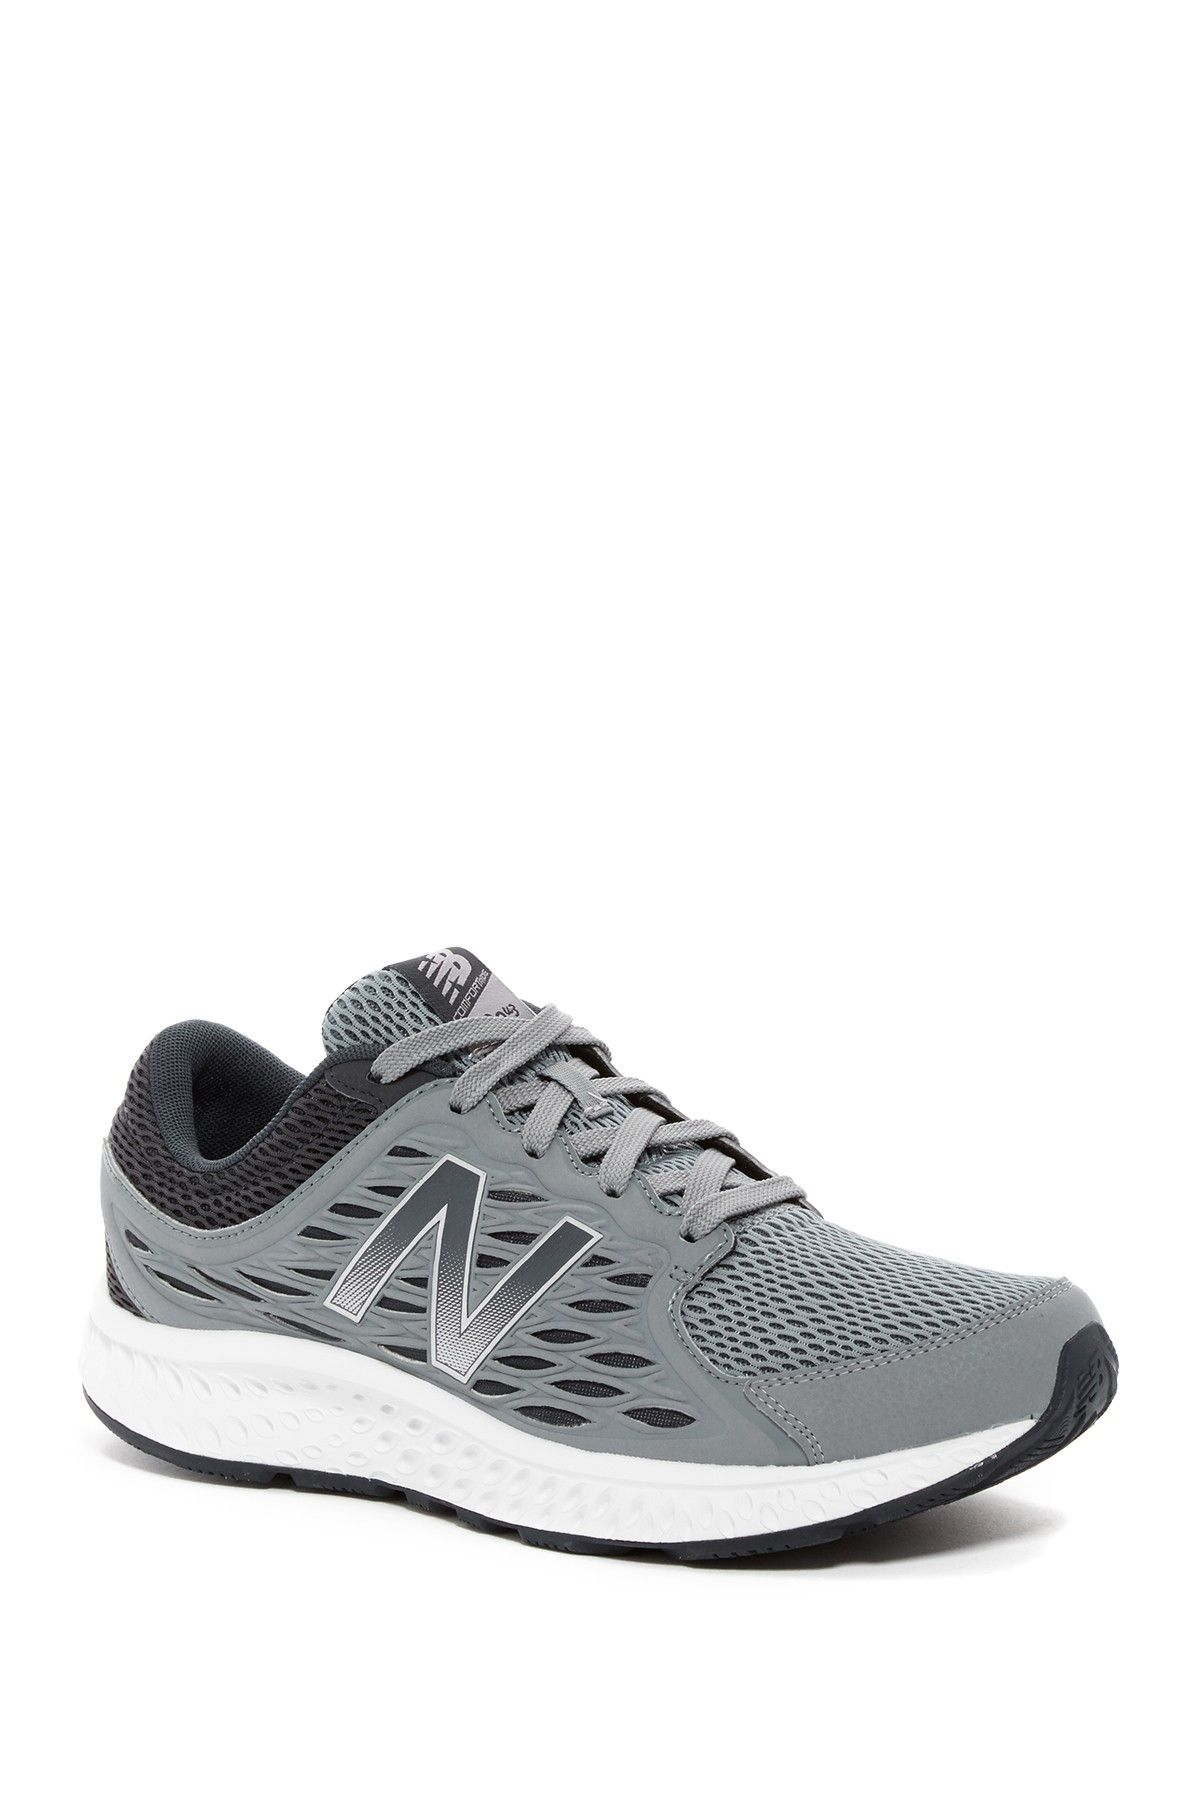 2709c182358 New Balance 420v3 Running Sneaker - Extra Wide Width Available ...